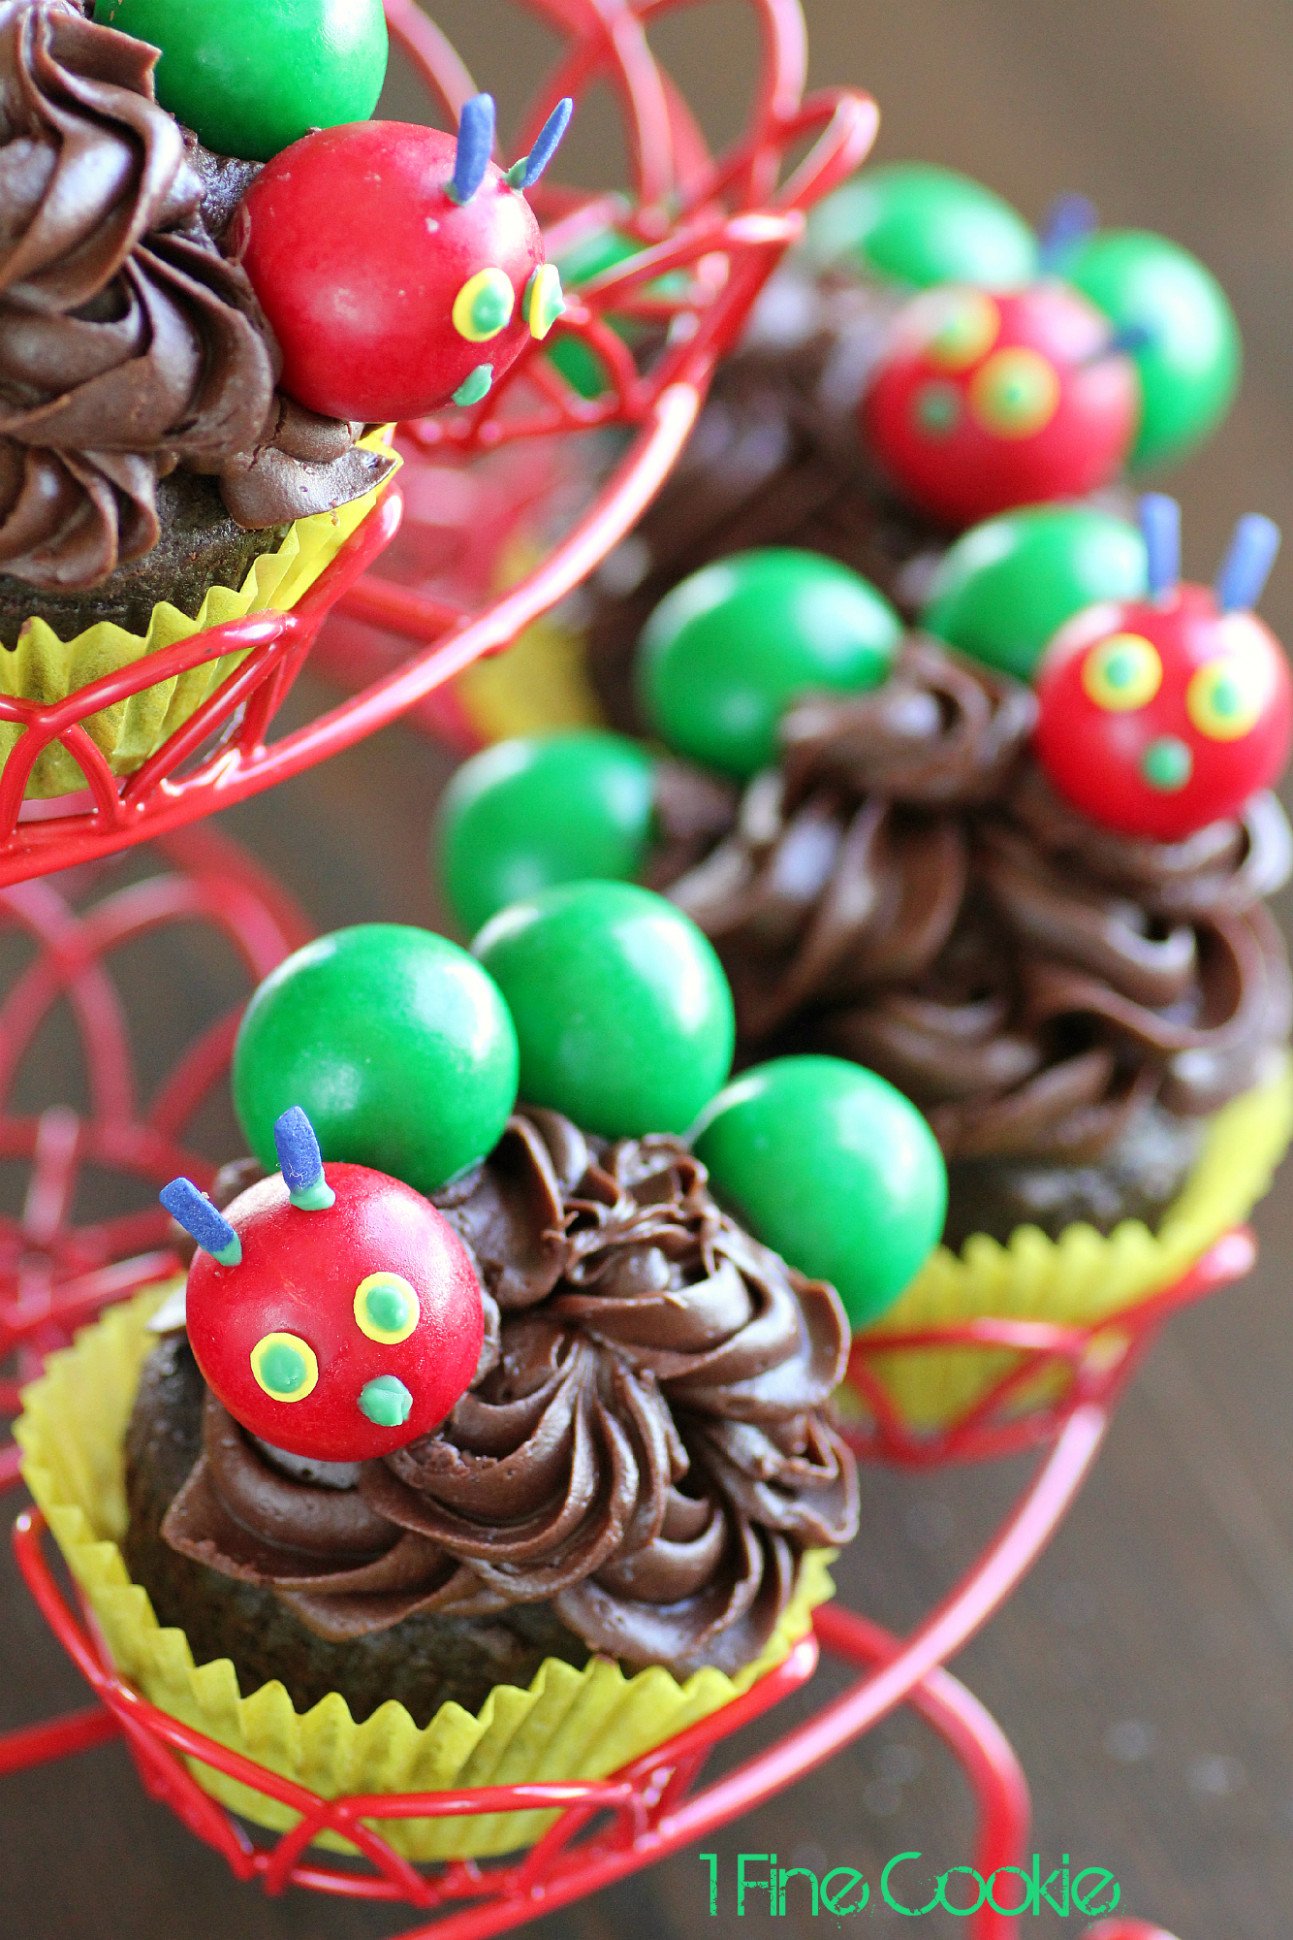 The Very Hungry Caterpillar Cake and Cupcakes